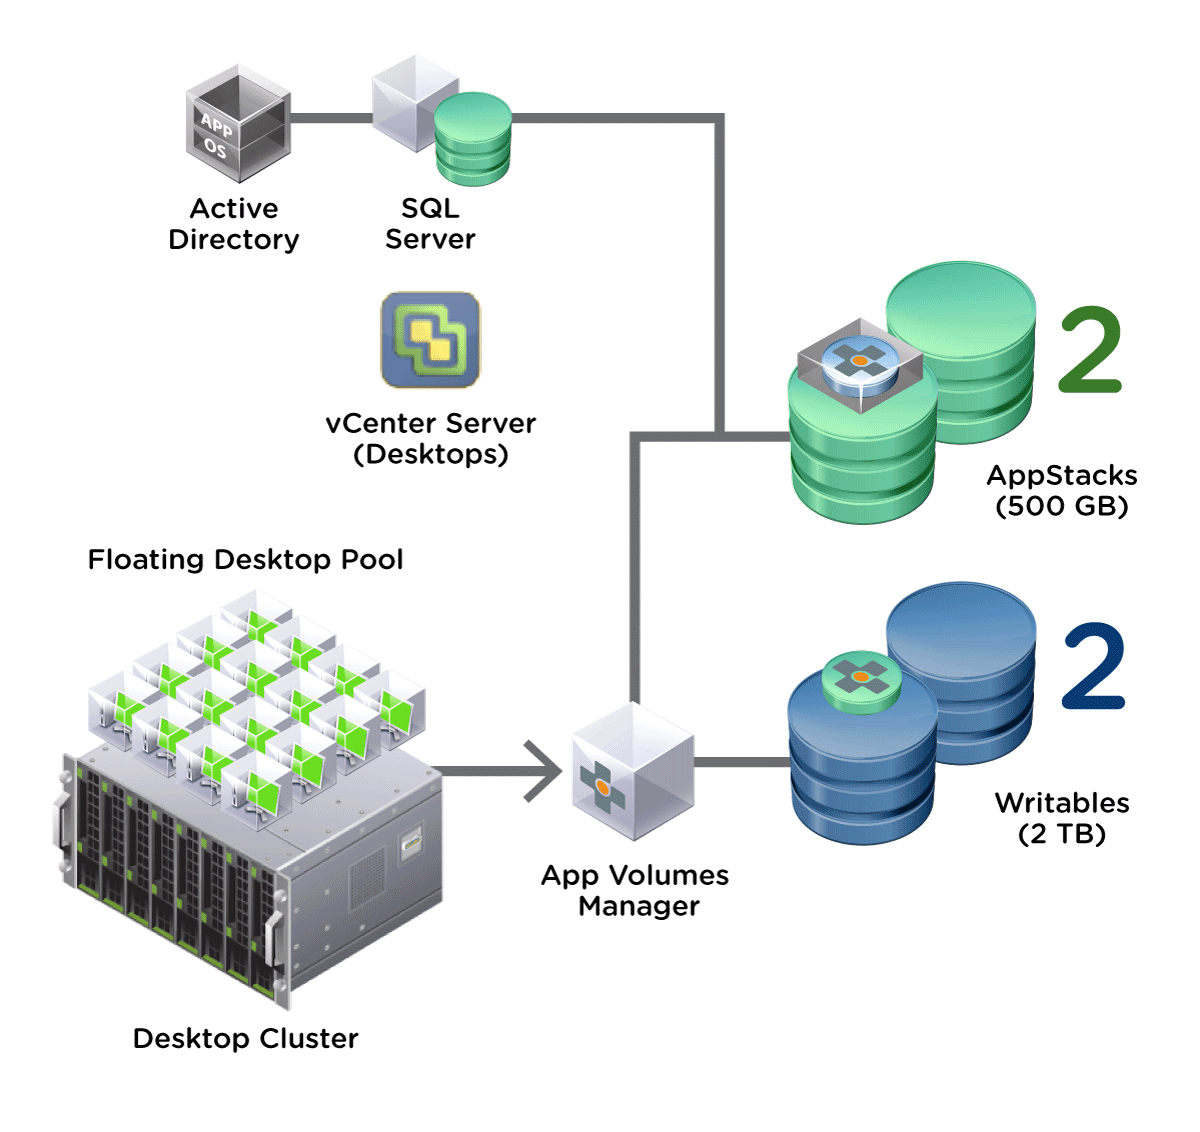 App Volumes Deployment Configuration